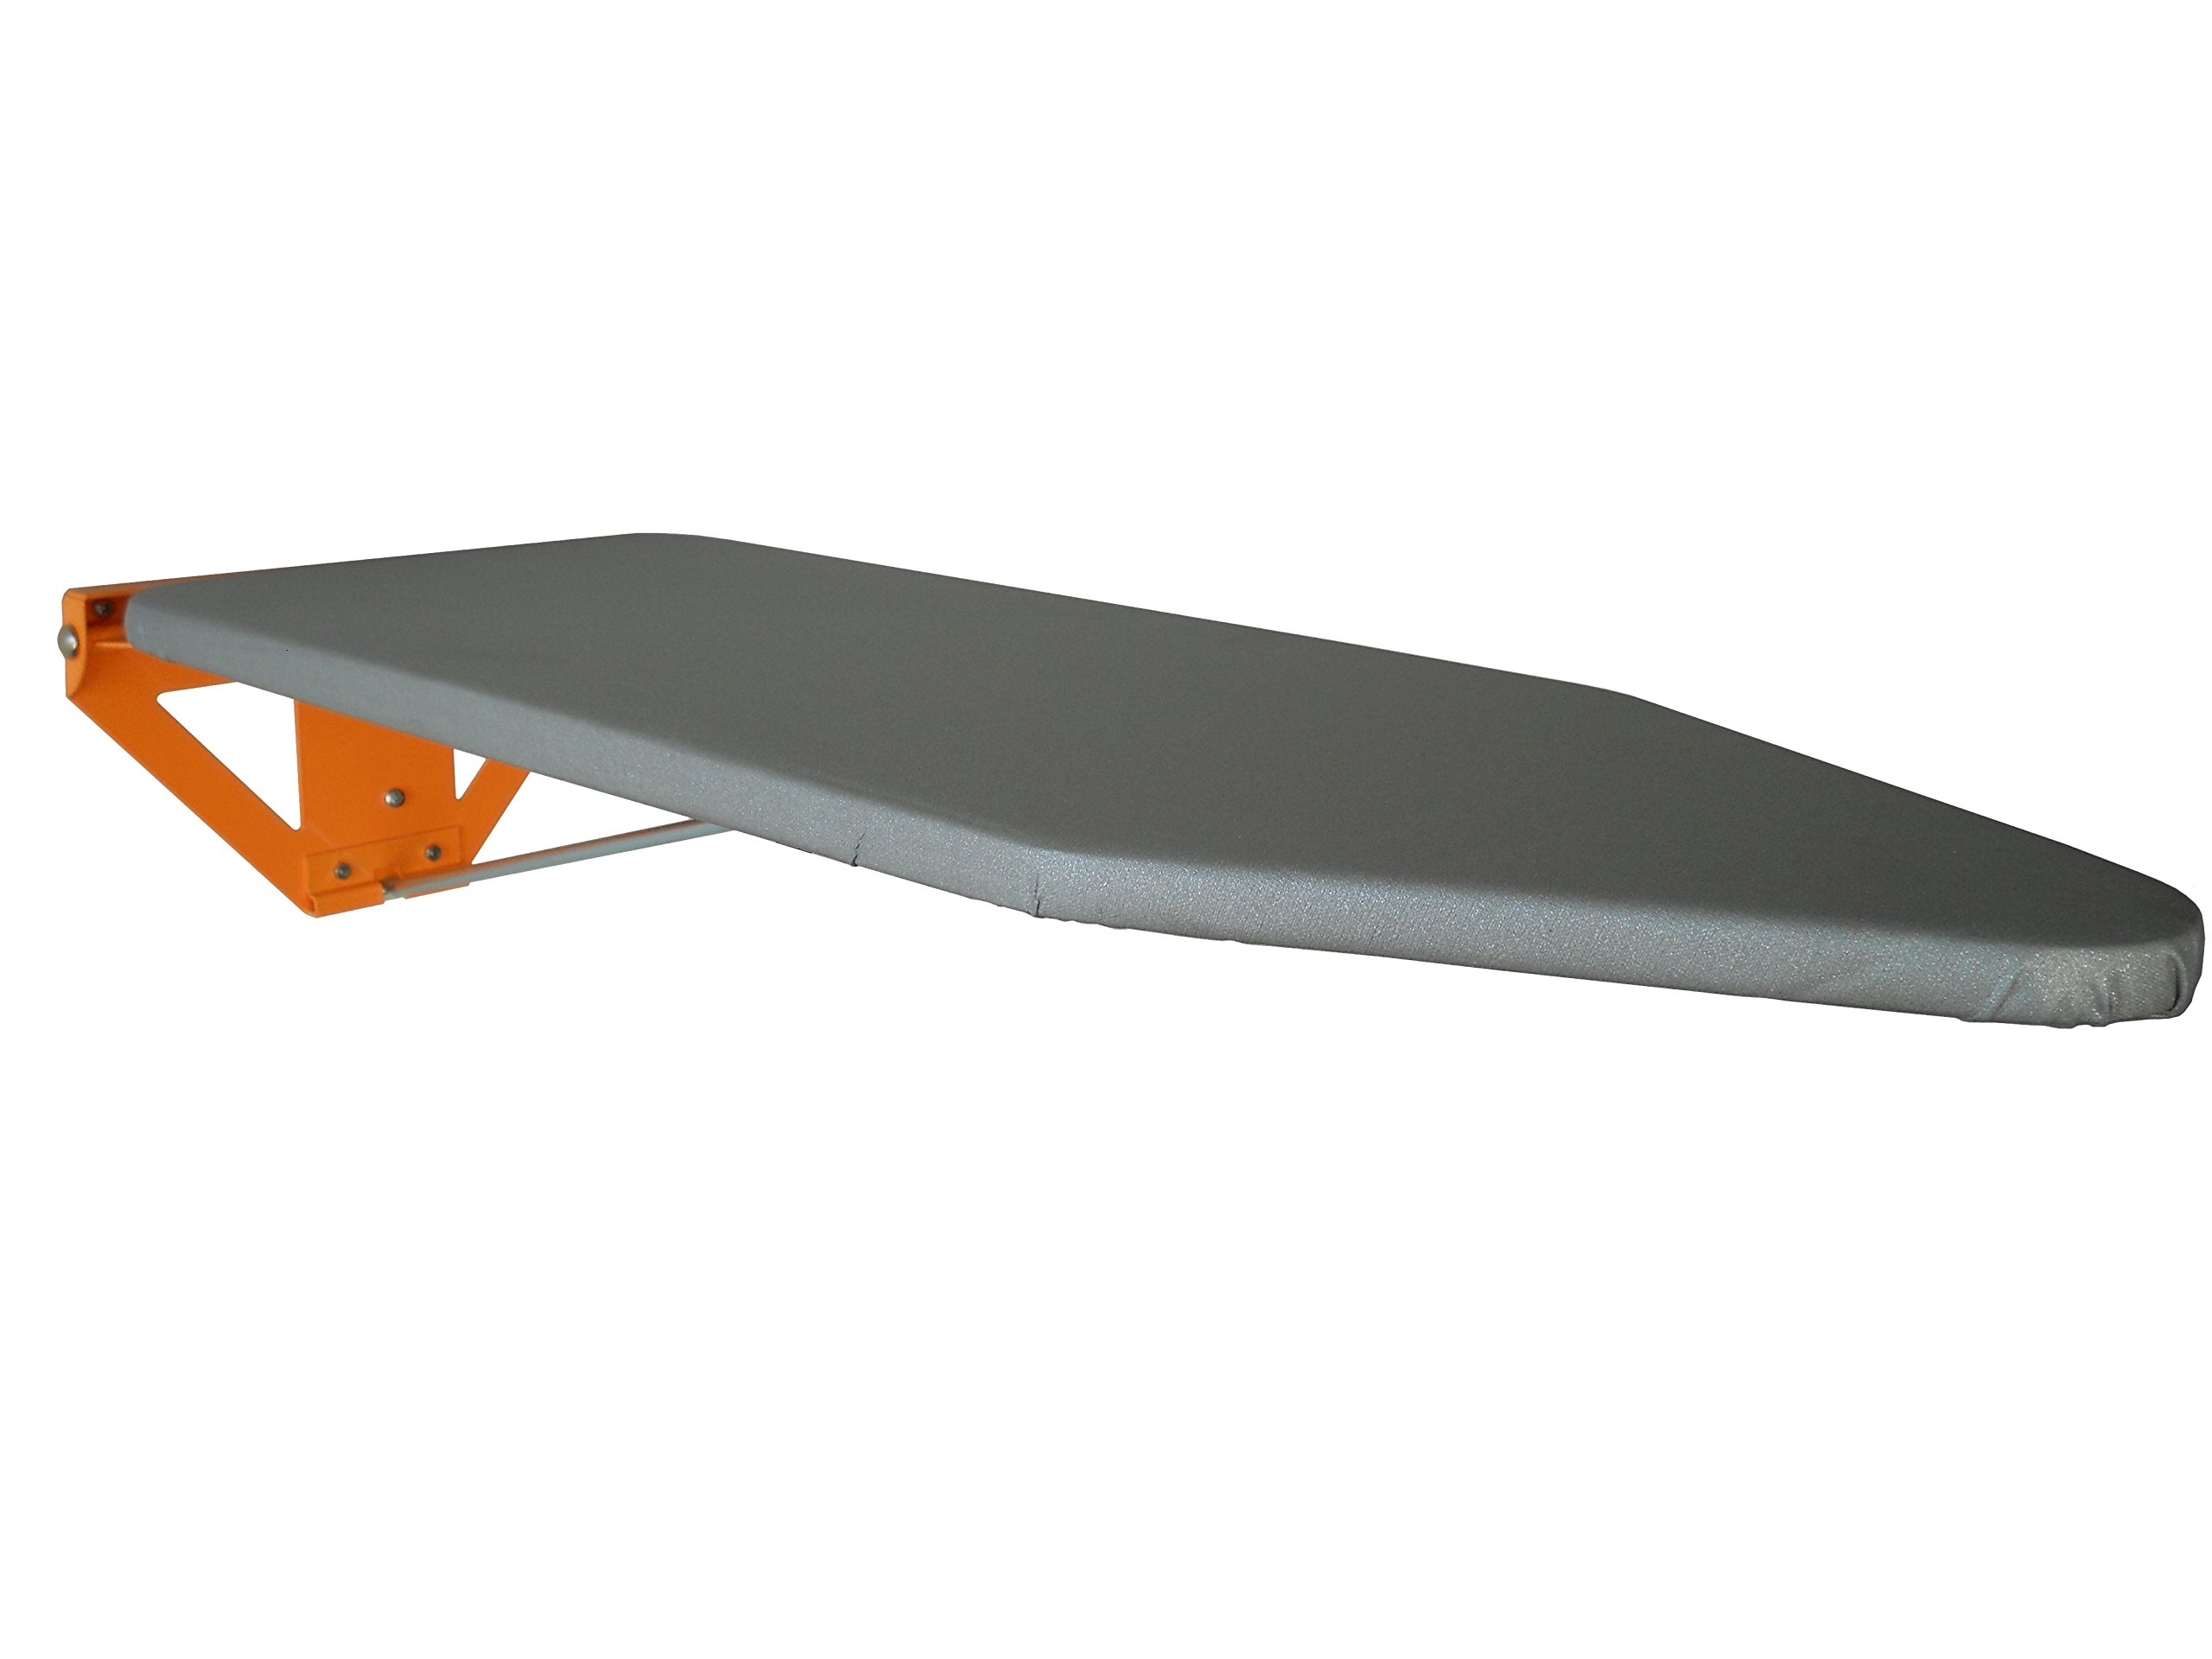 Compact Wall Mounted Ironing Board - Limited Edition Orange Fixing Plate